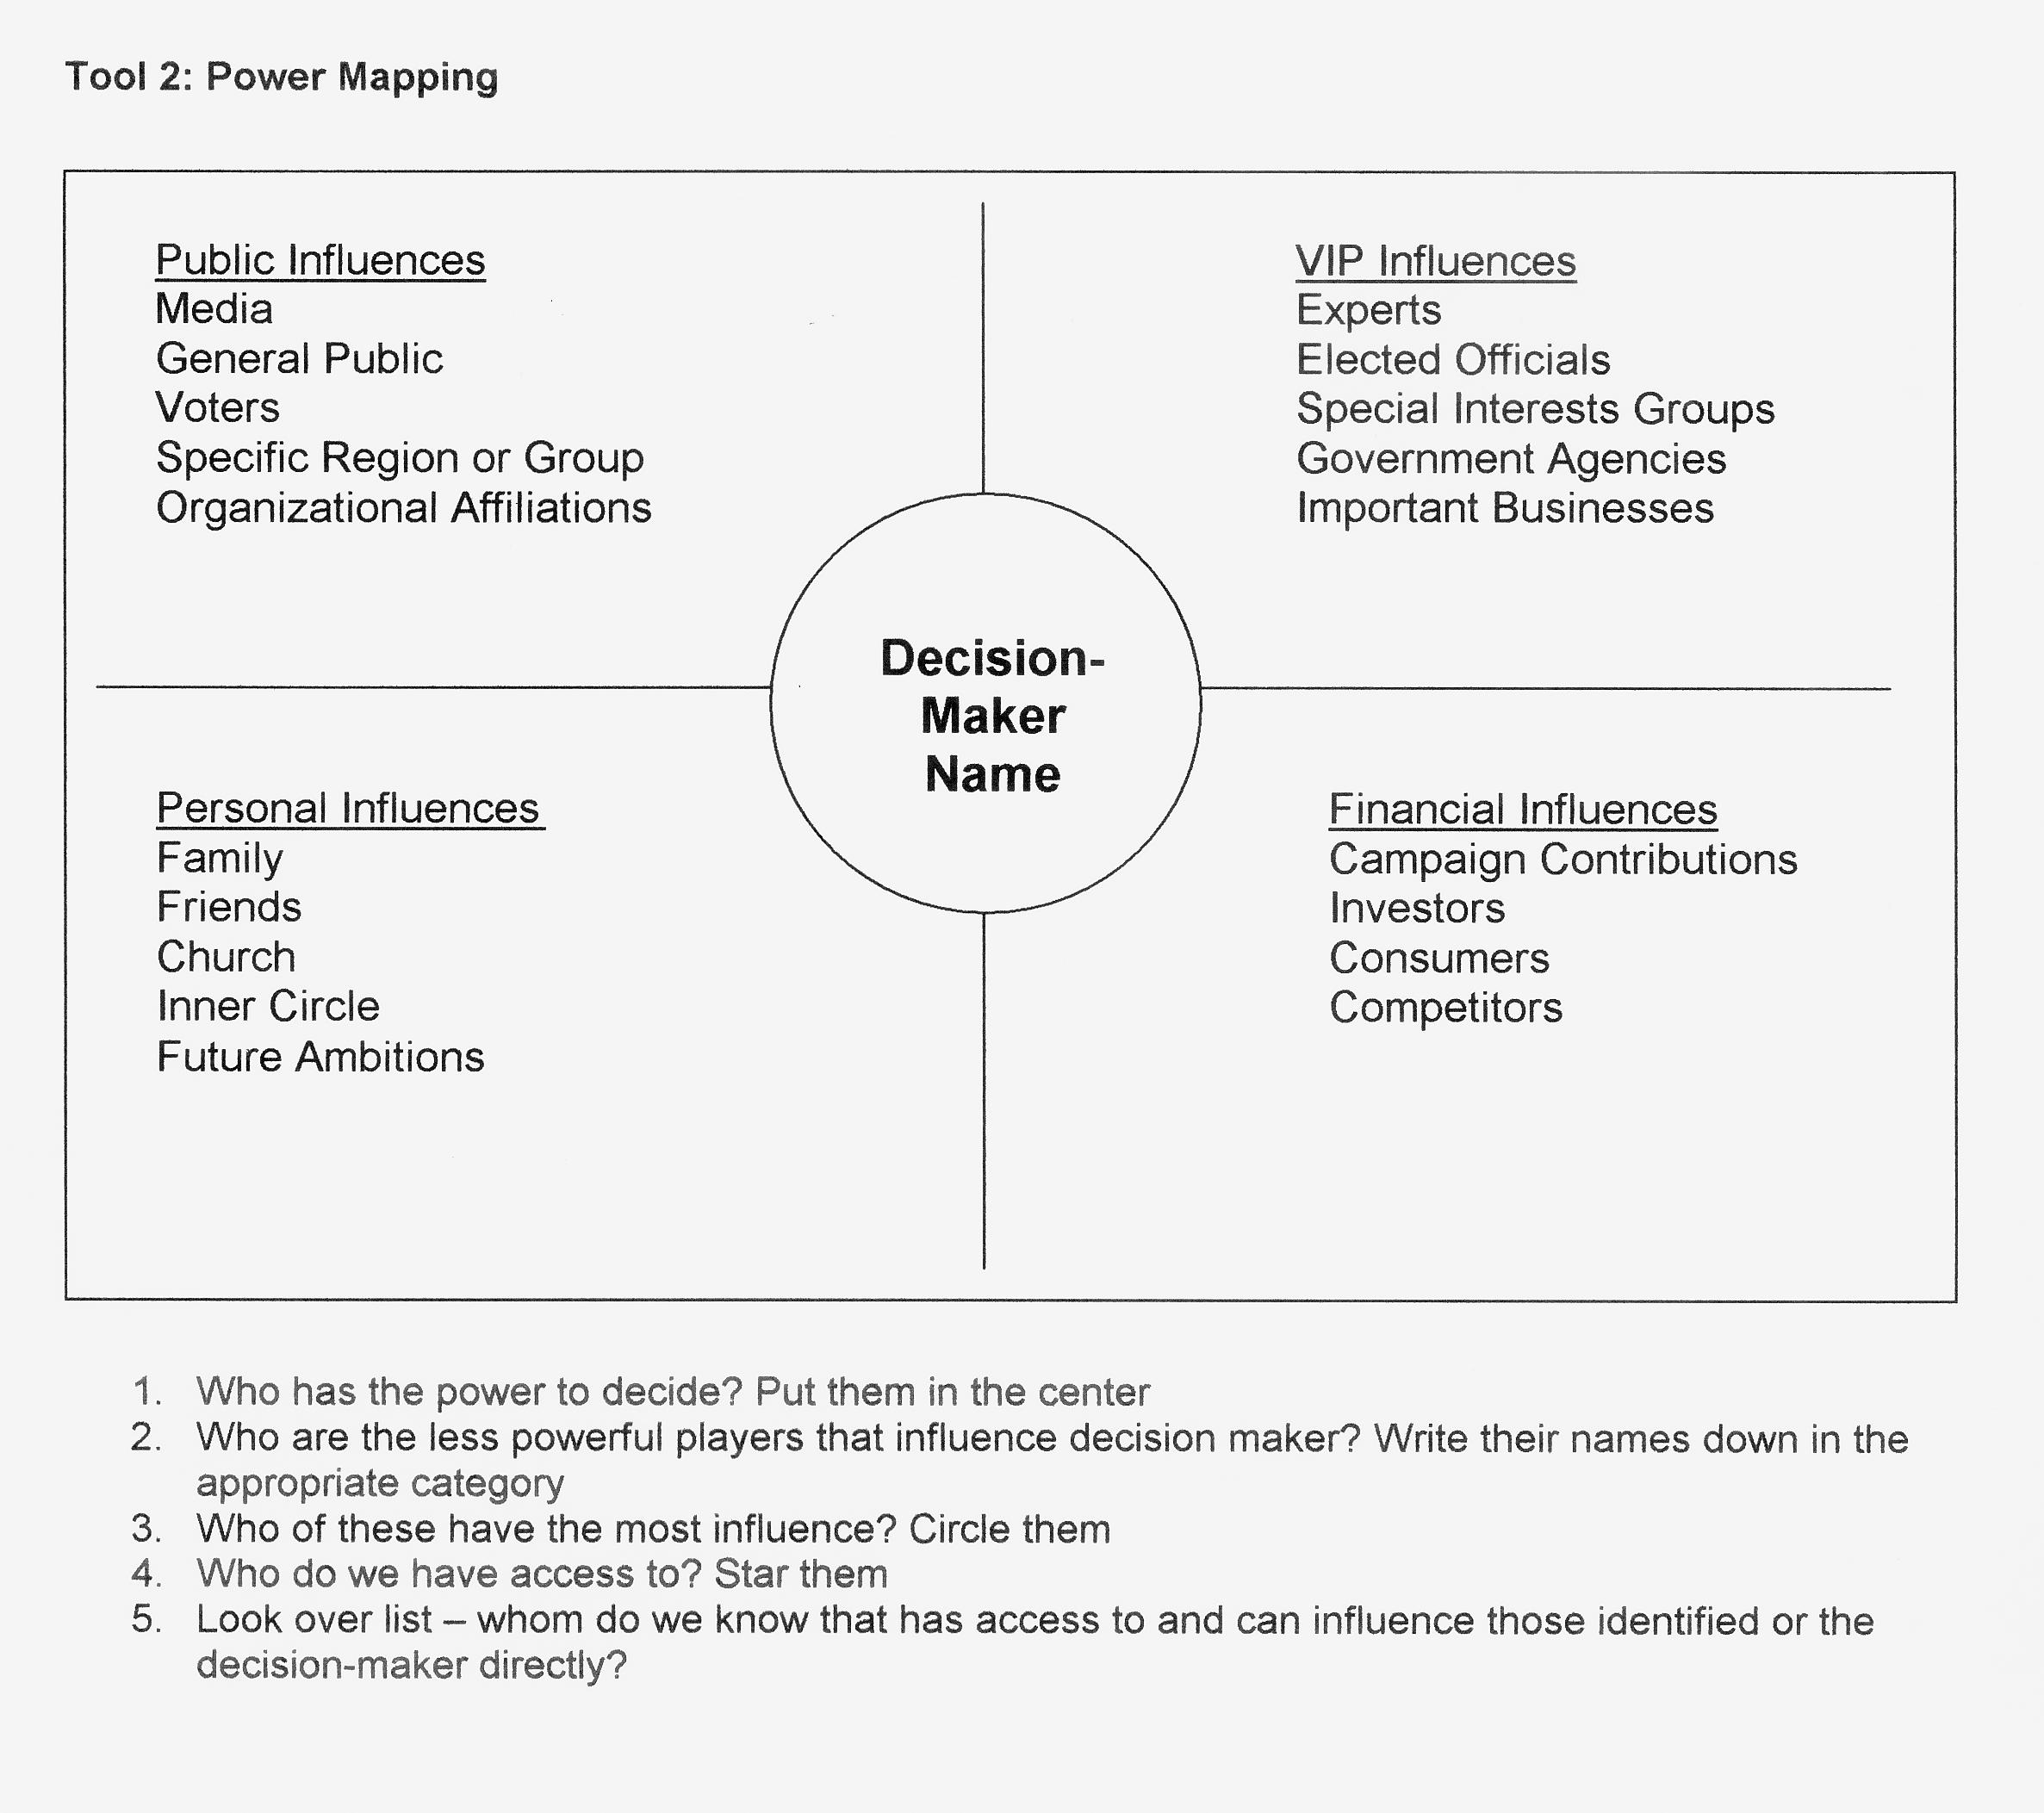 Tool 2 Power Mapping